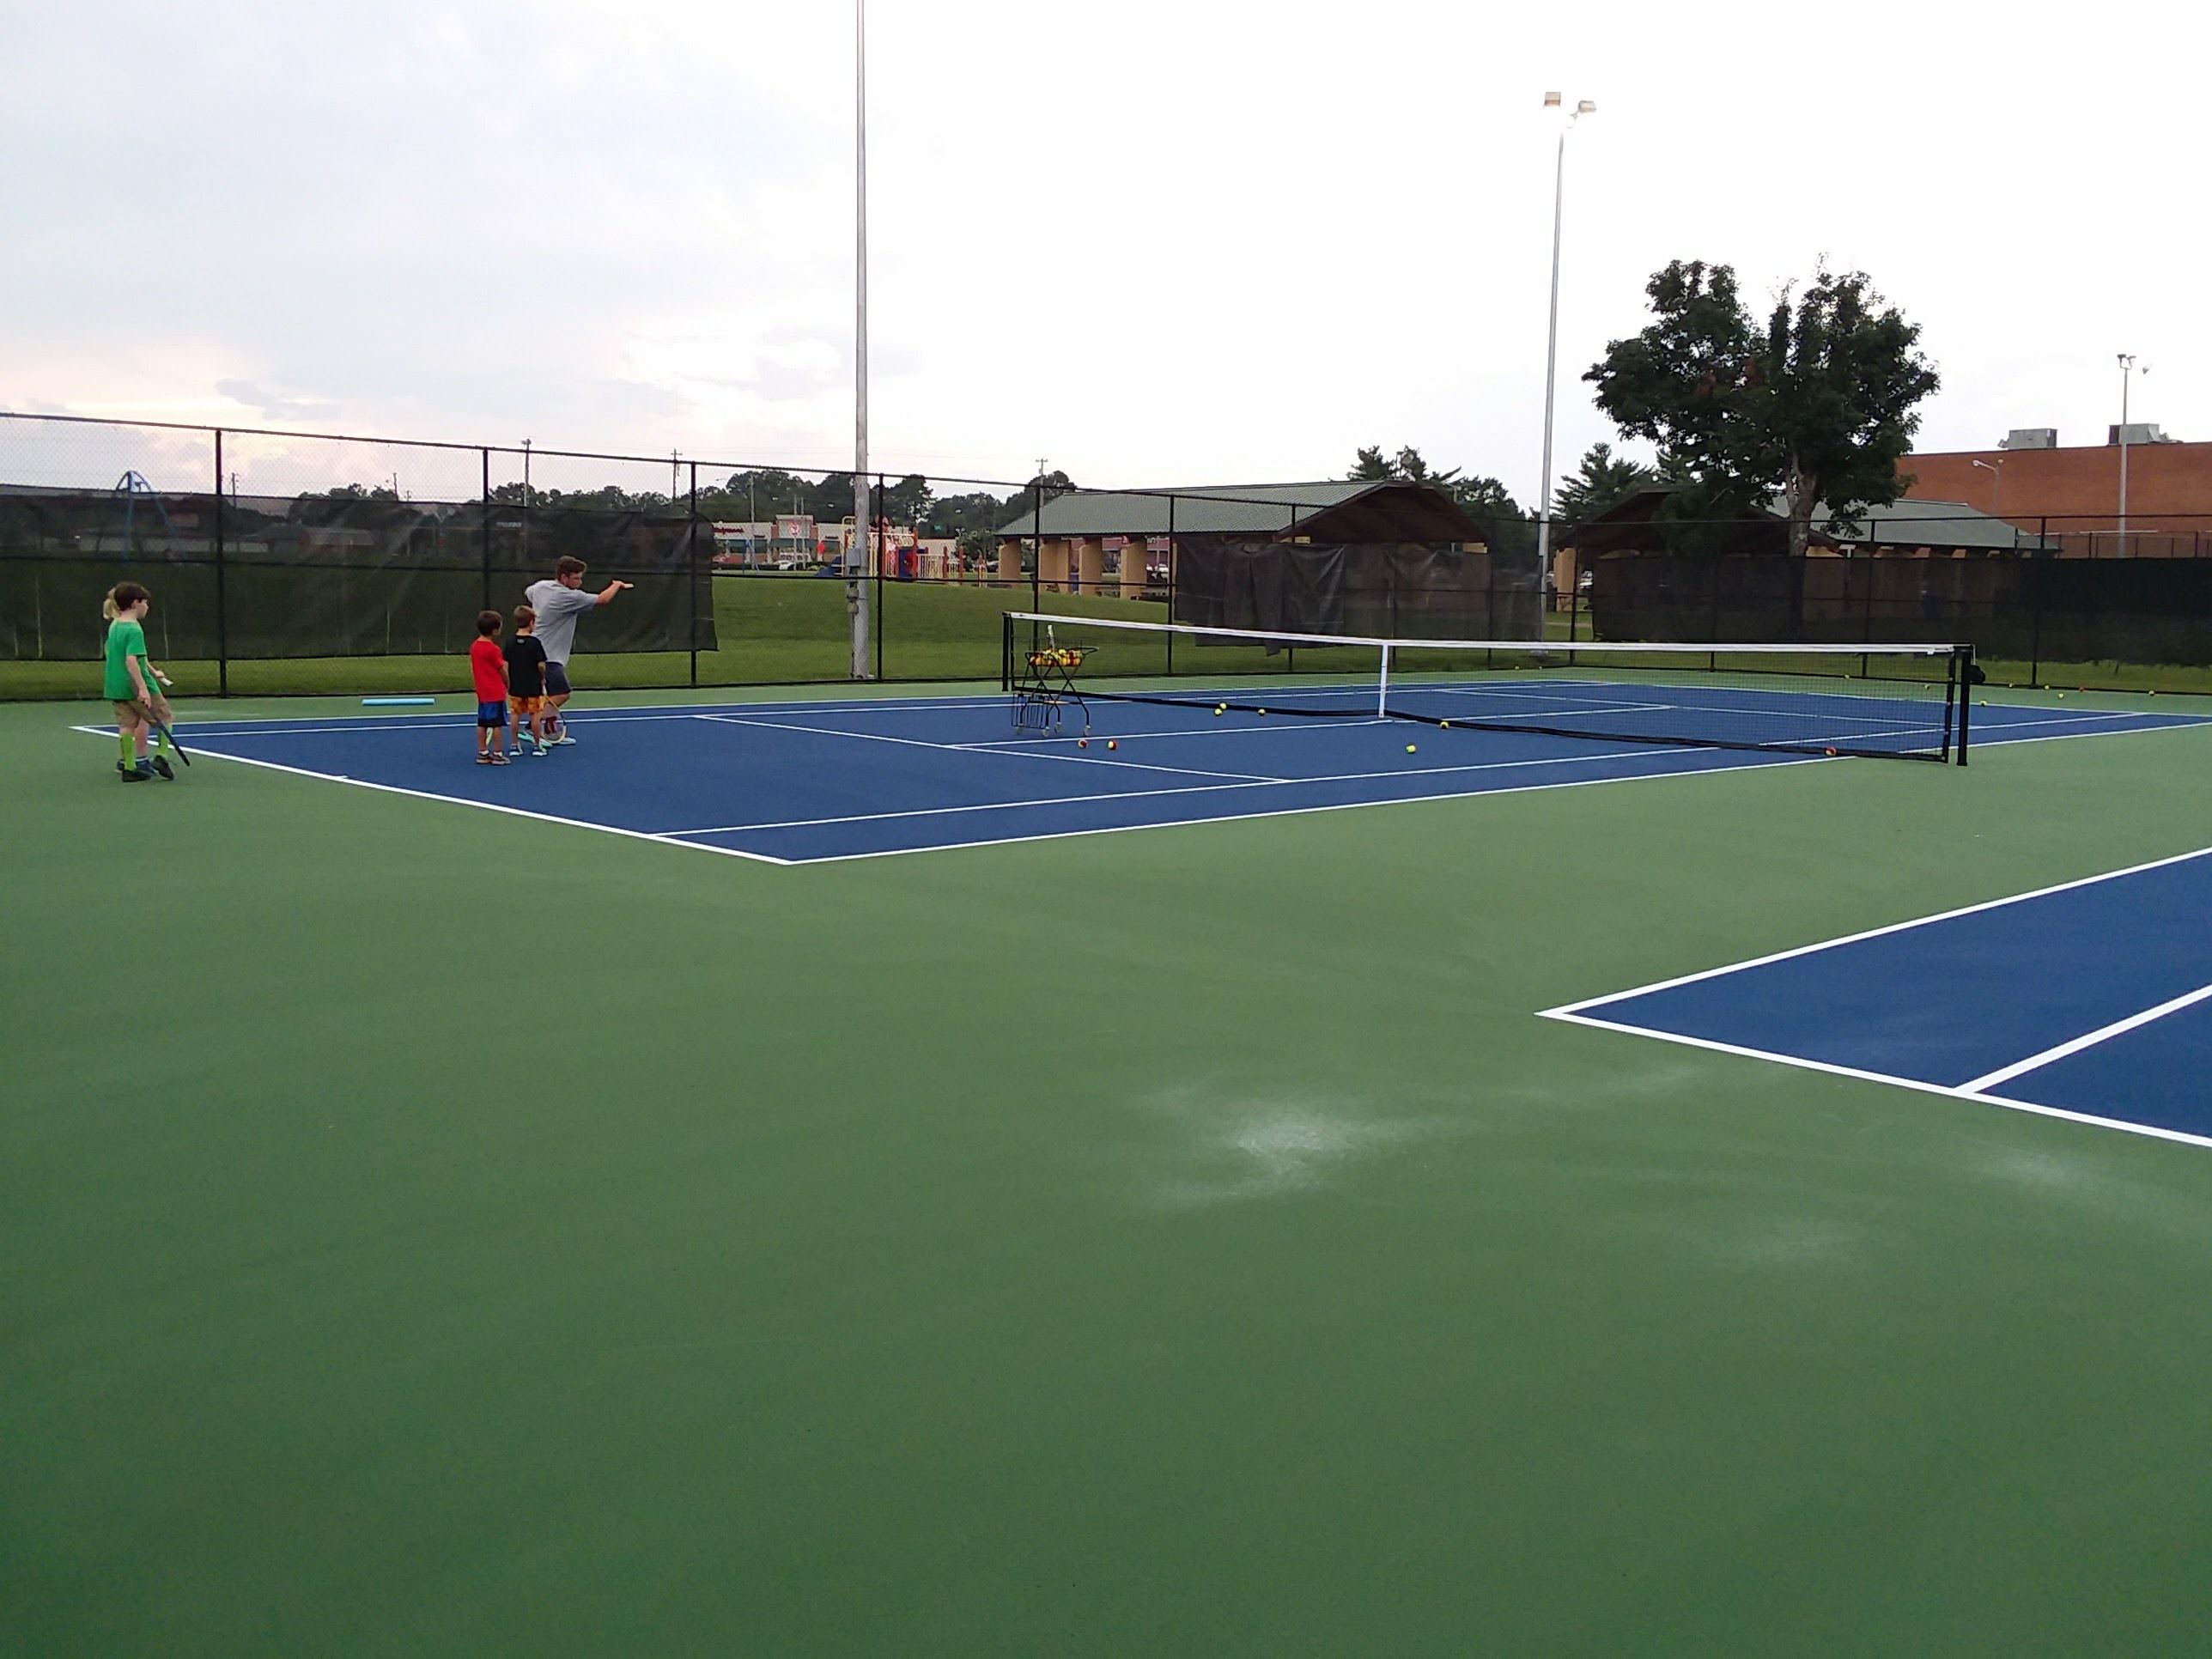 2017 Youth Tennis